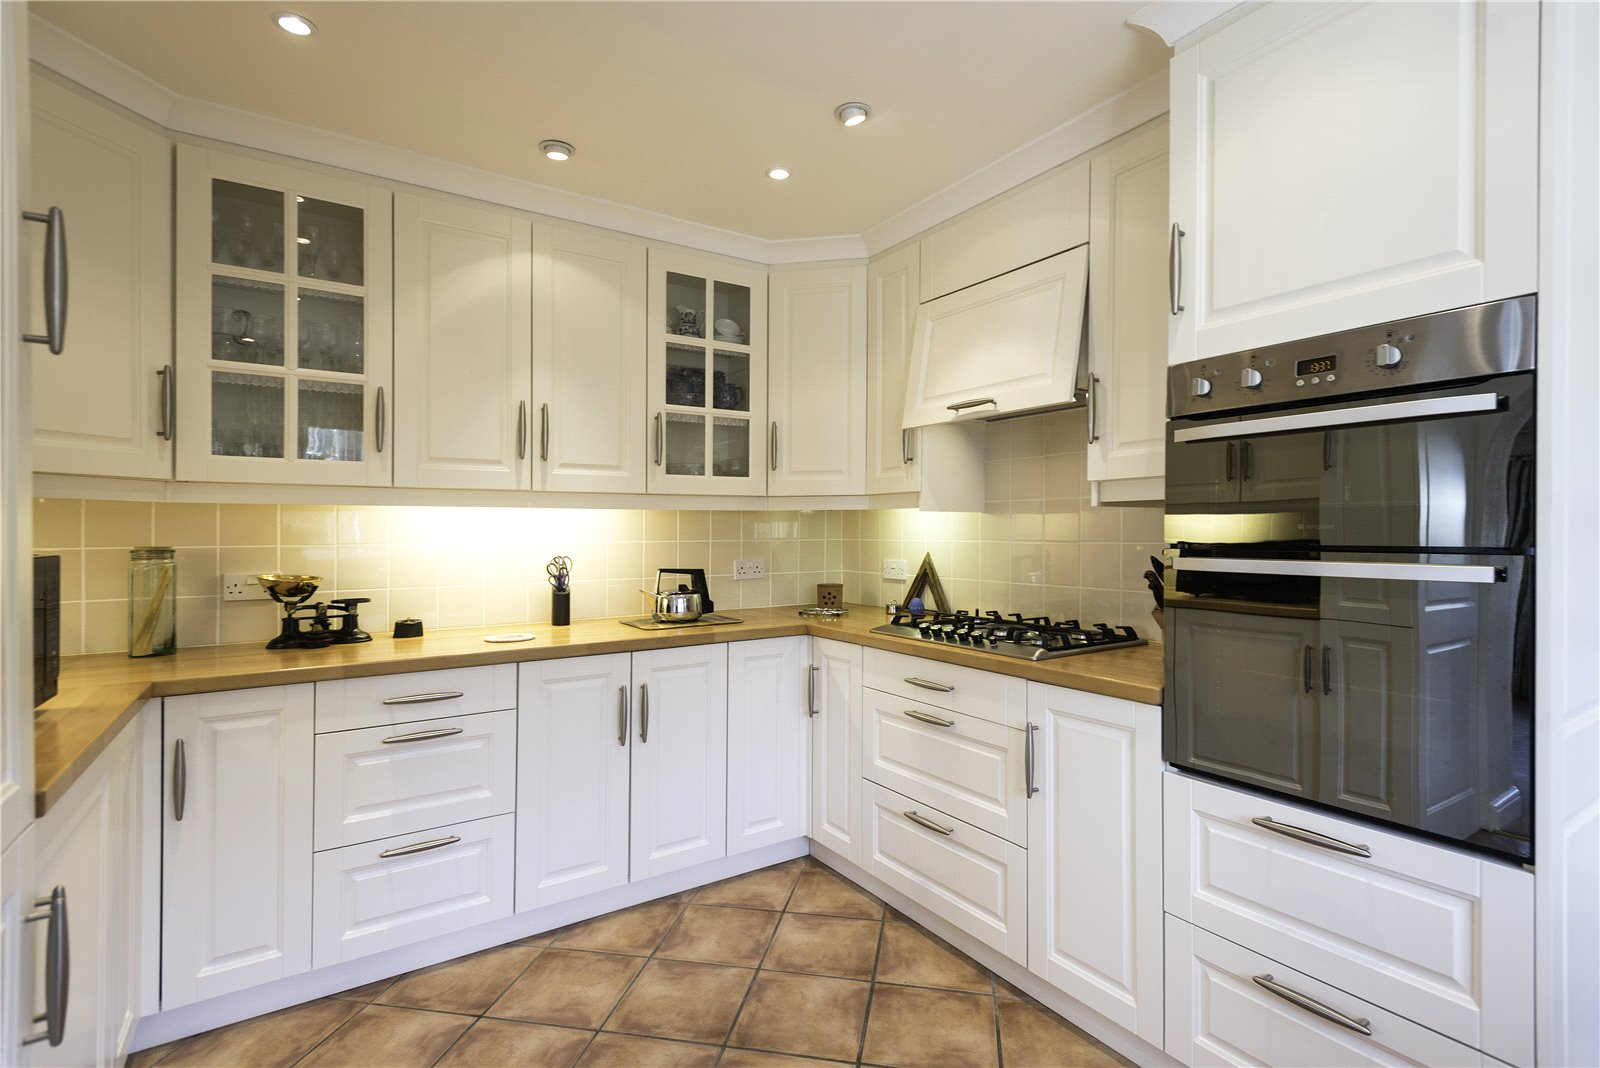 Treetops, Orchard Rise, Richards Castle, Ludlow, Herefordshire, SY8